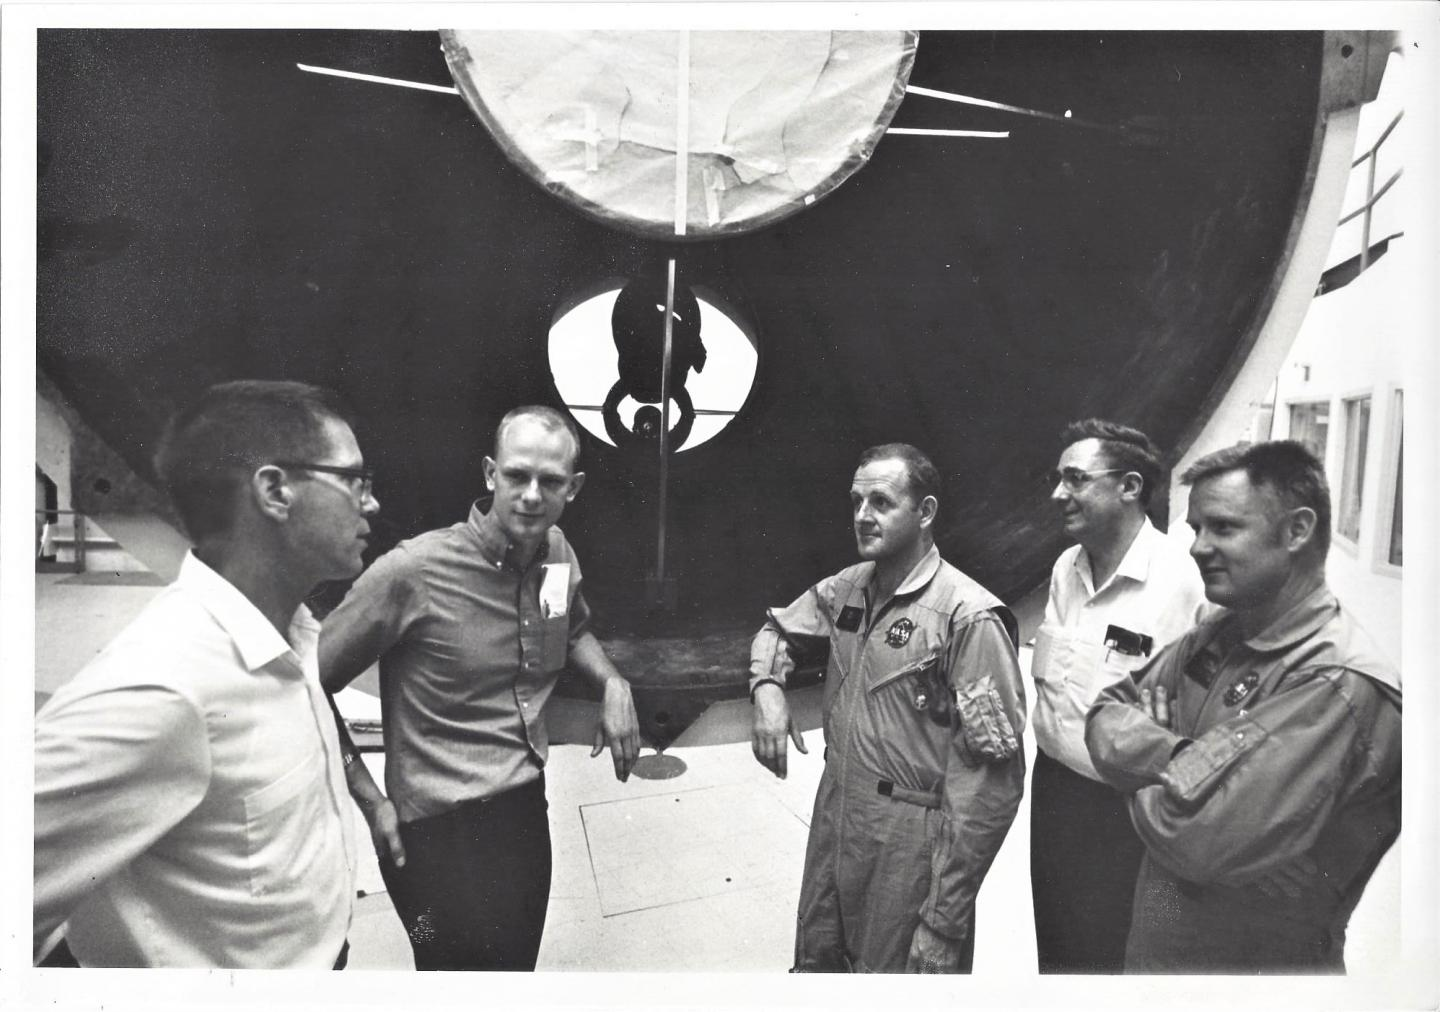 UMD physicists Doug Currie & Carroll Alley with McDonald Observatory Dir. Harlan Smith and NASA Scientists-Astronauts (1969)